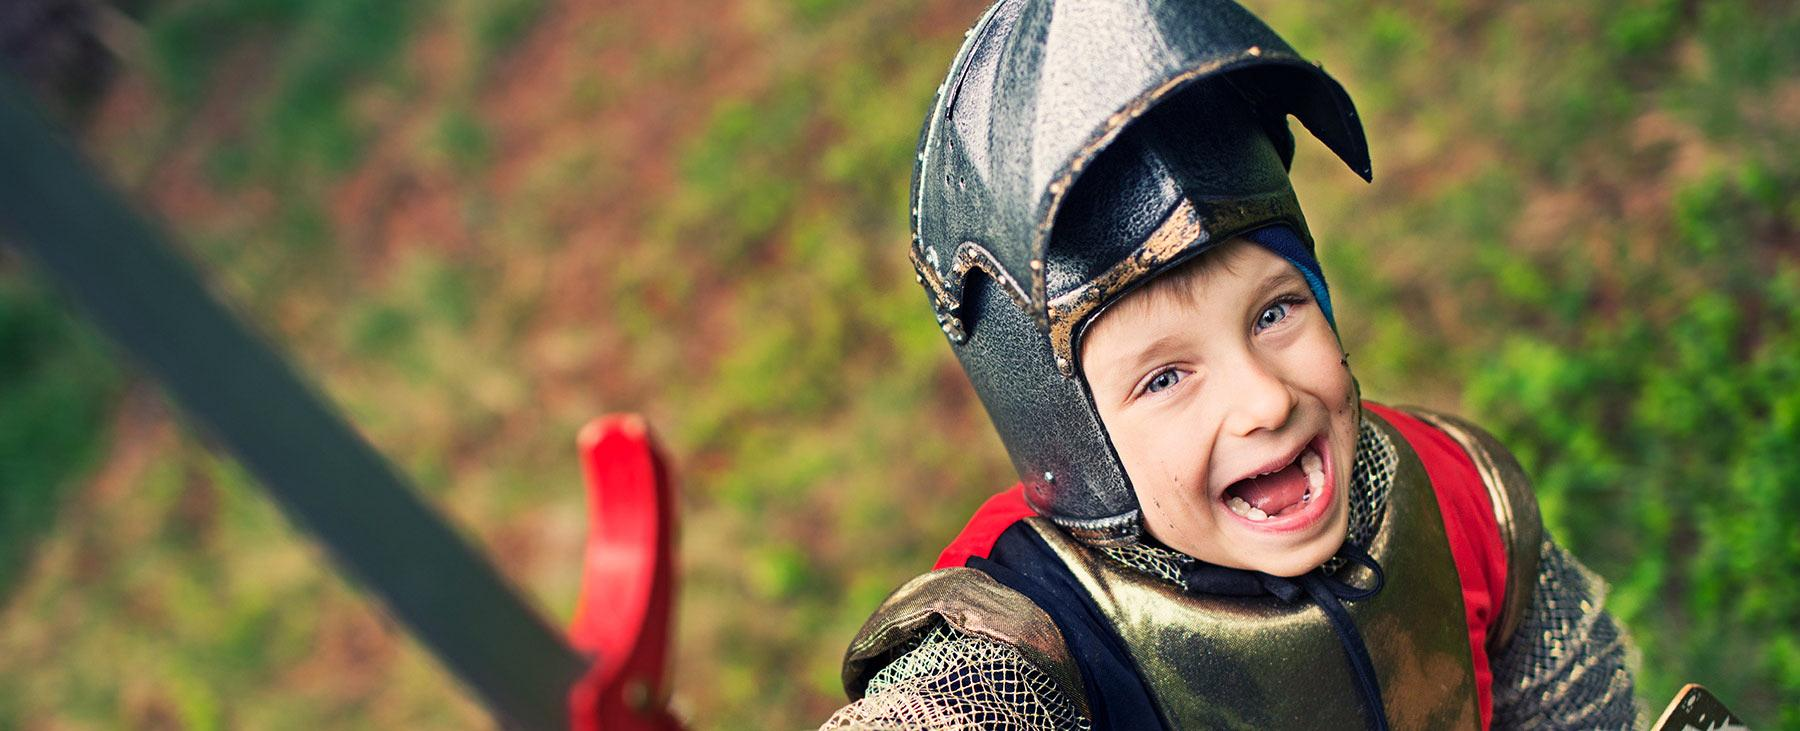 Kids Go Free image, a boy in a Knight's costume